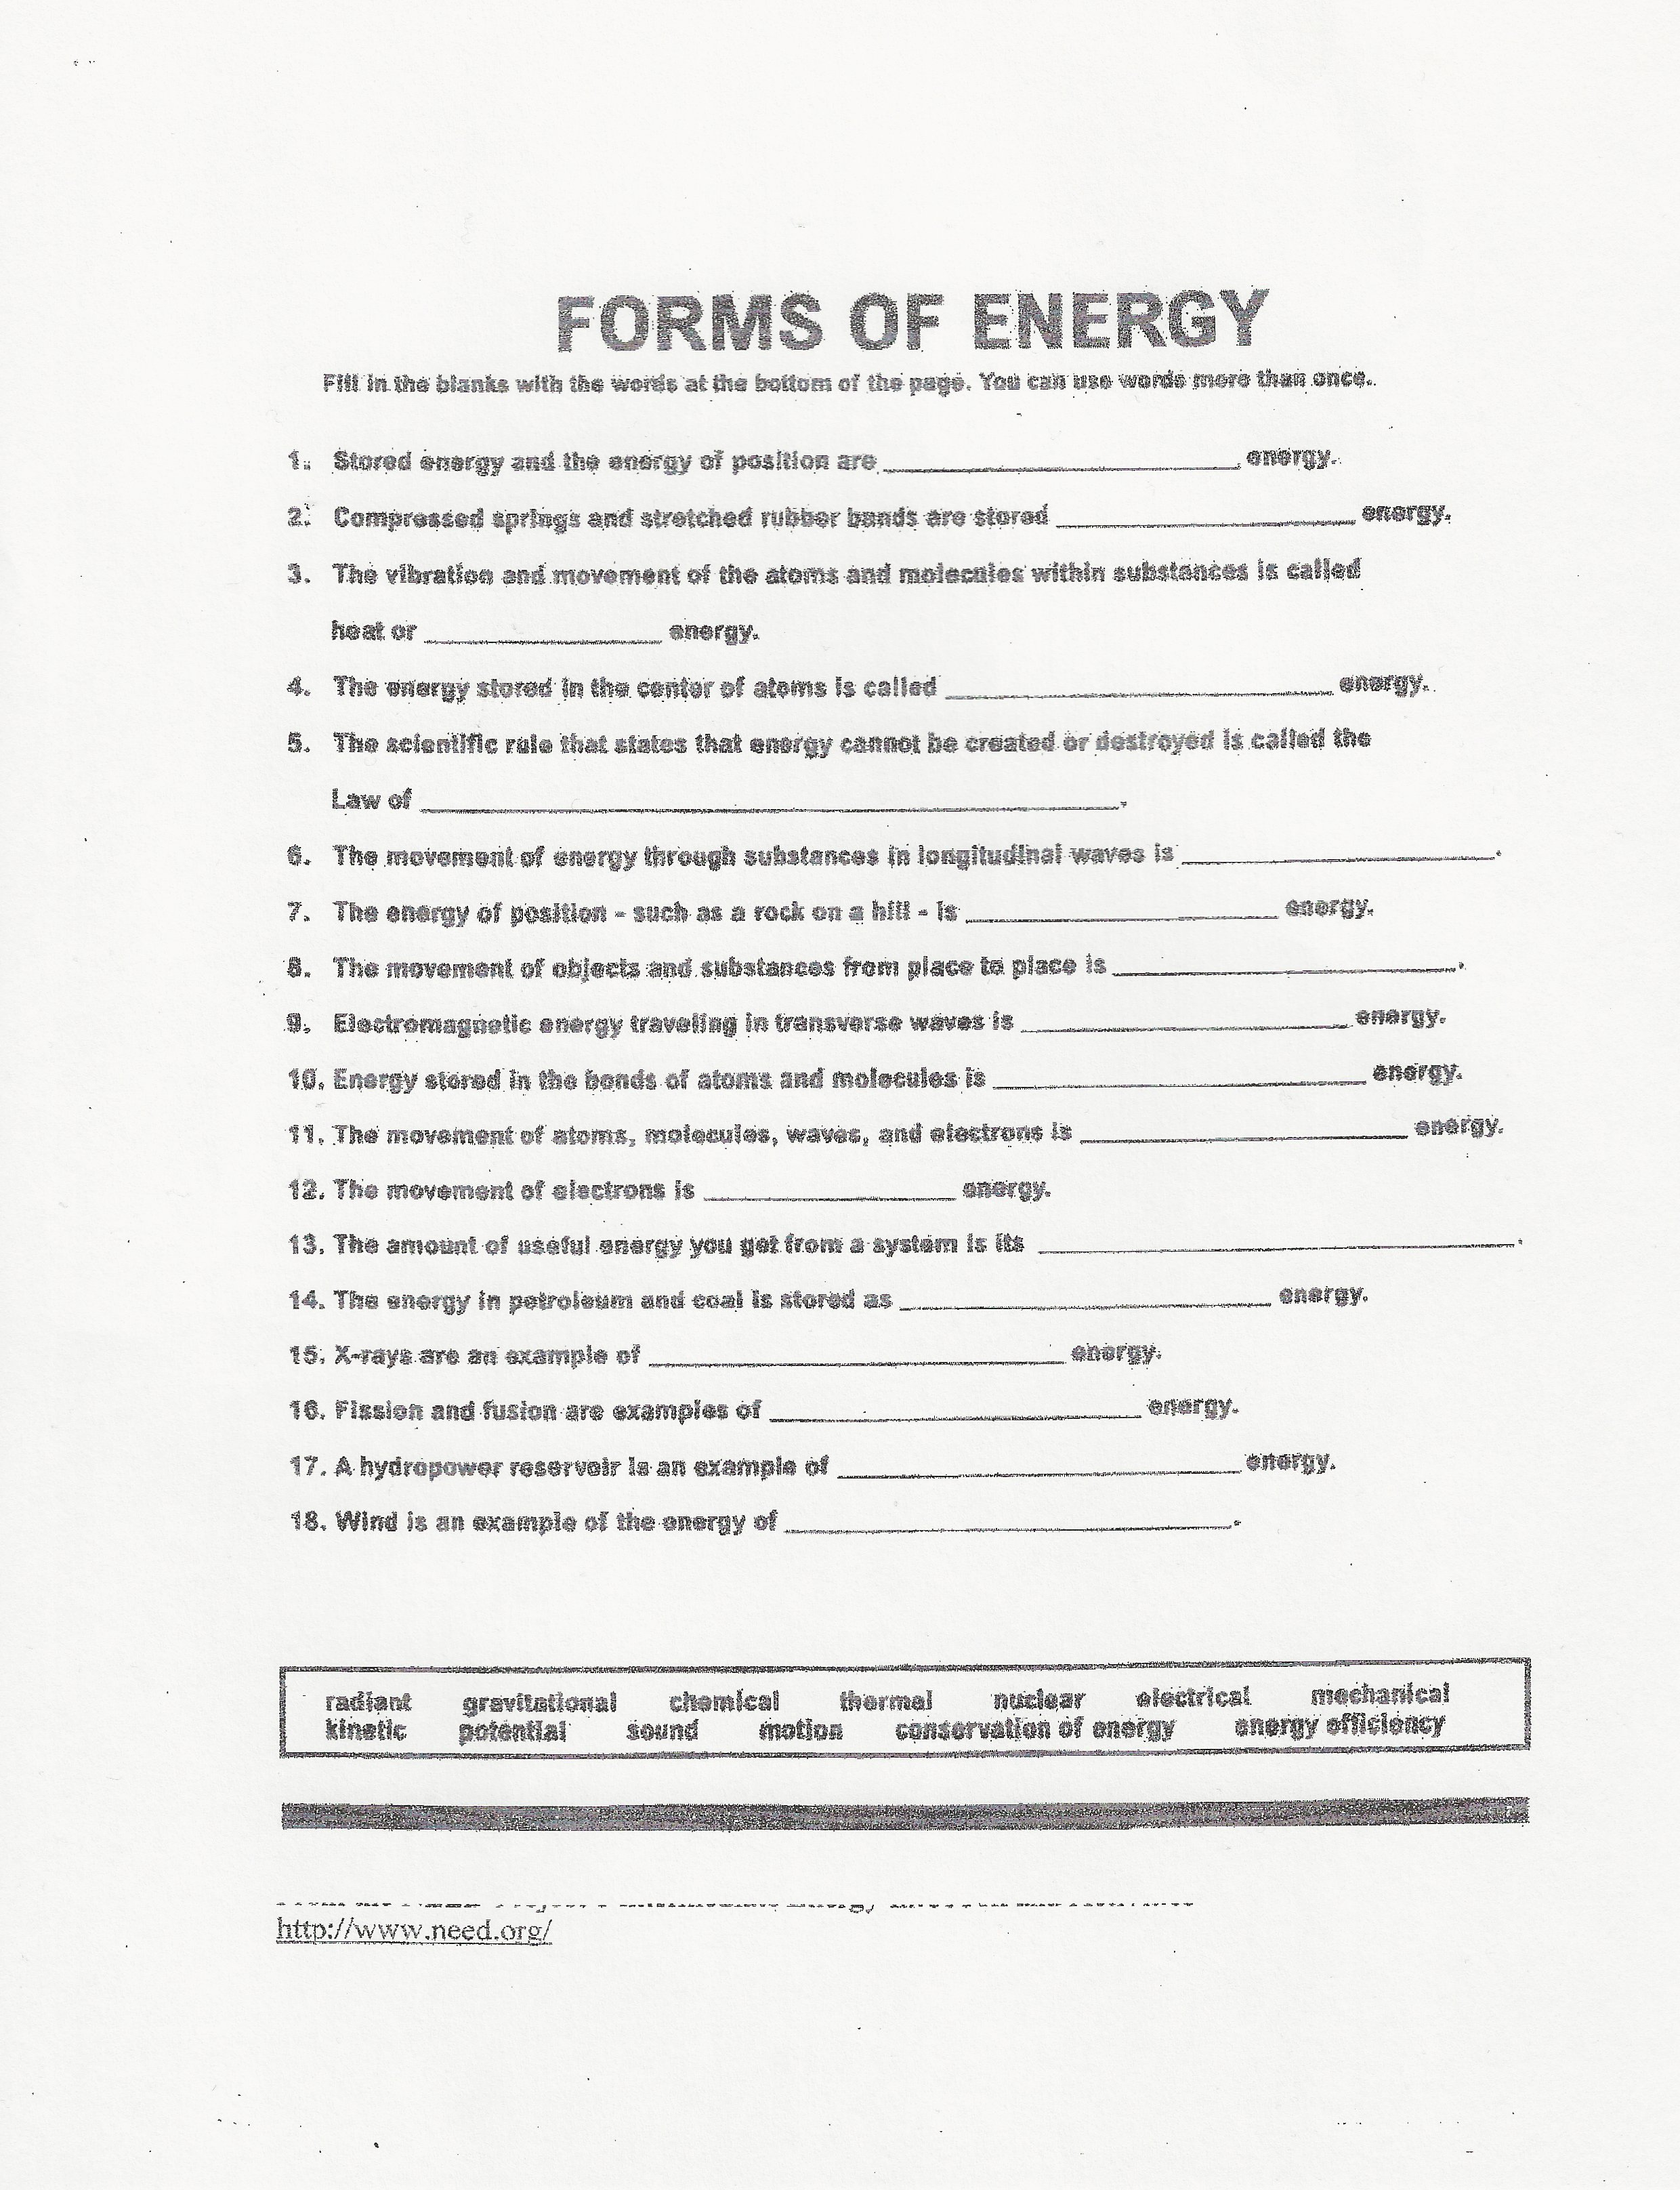 Printables Forms Of Energy Worksheet forms of energy worksheet davezan physical science quarter 1 ms athena klock teacherpine worksheets abitlikethis